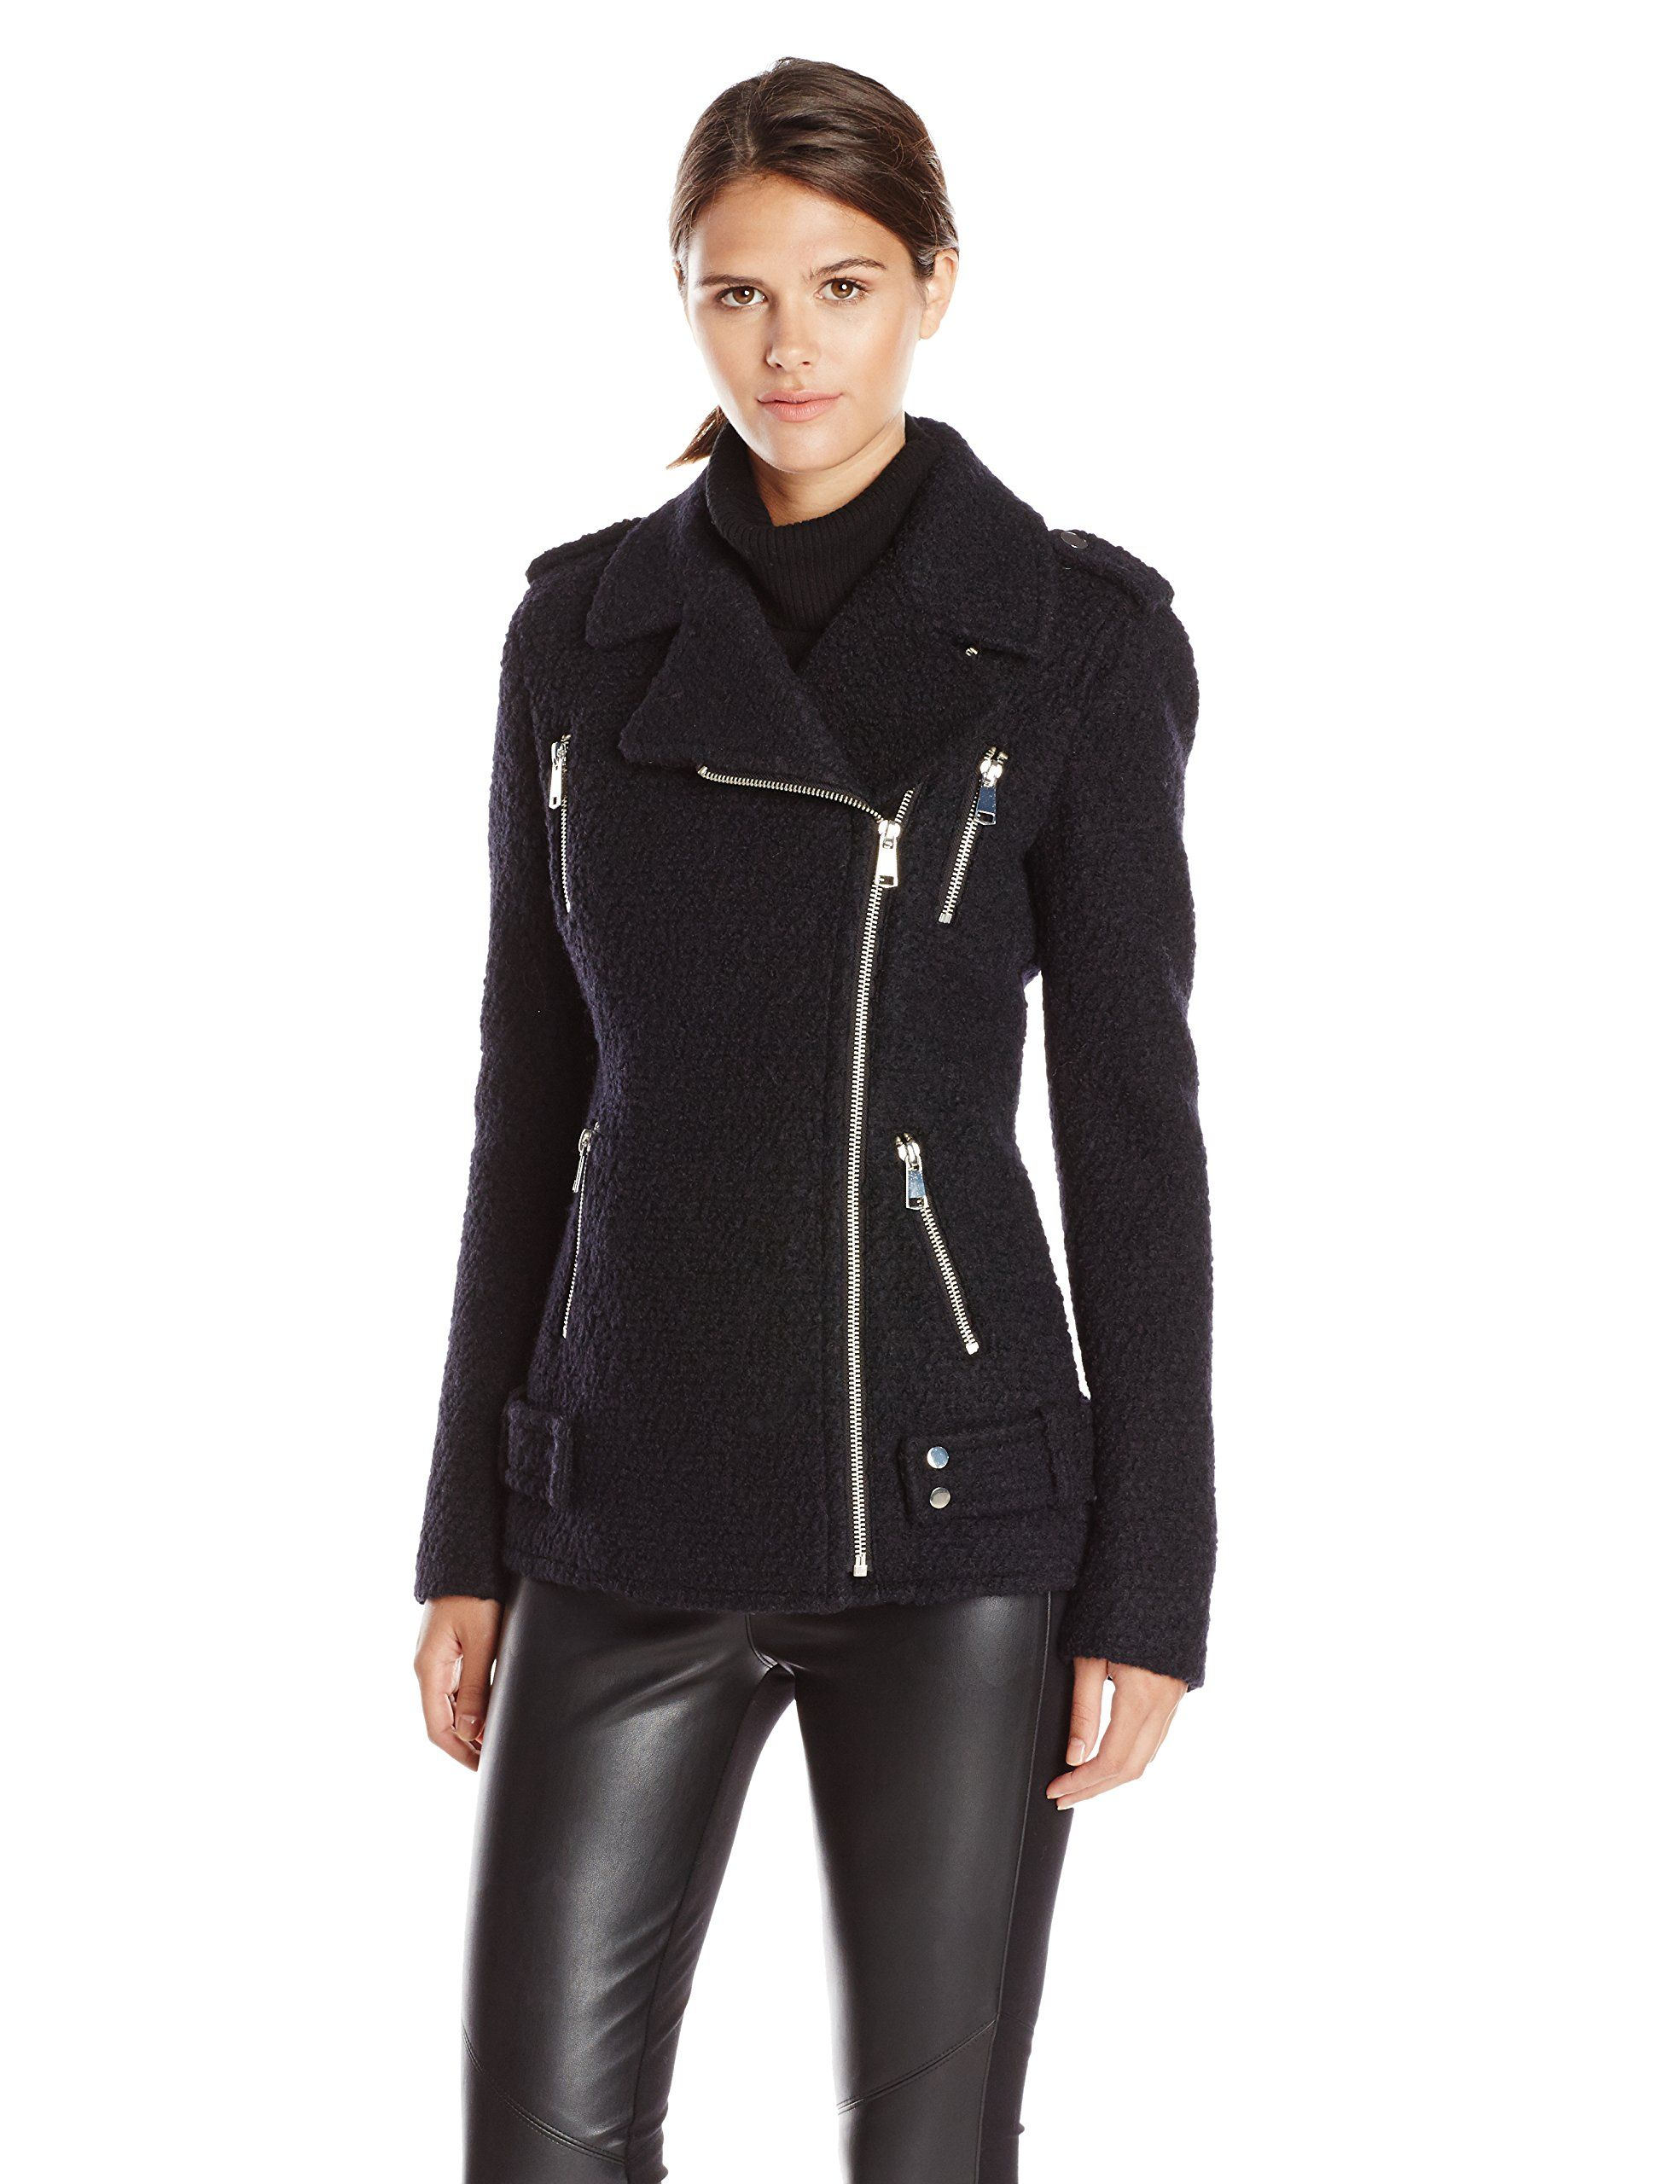 French Connection Women's Wool Boucle Moto Jacket, Black, 2 - long ...